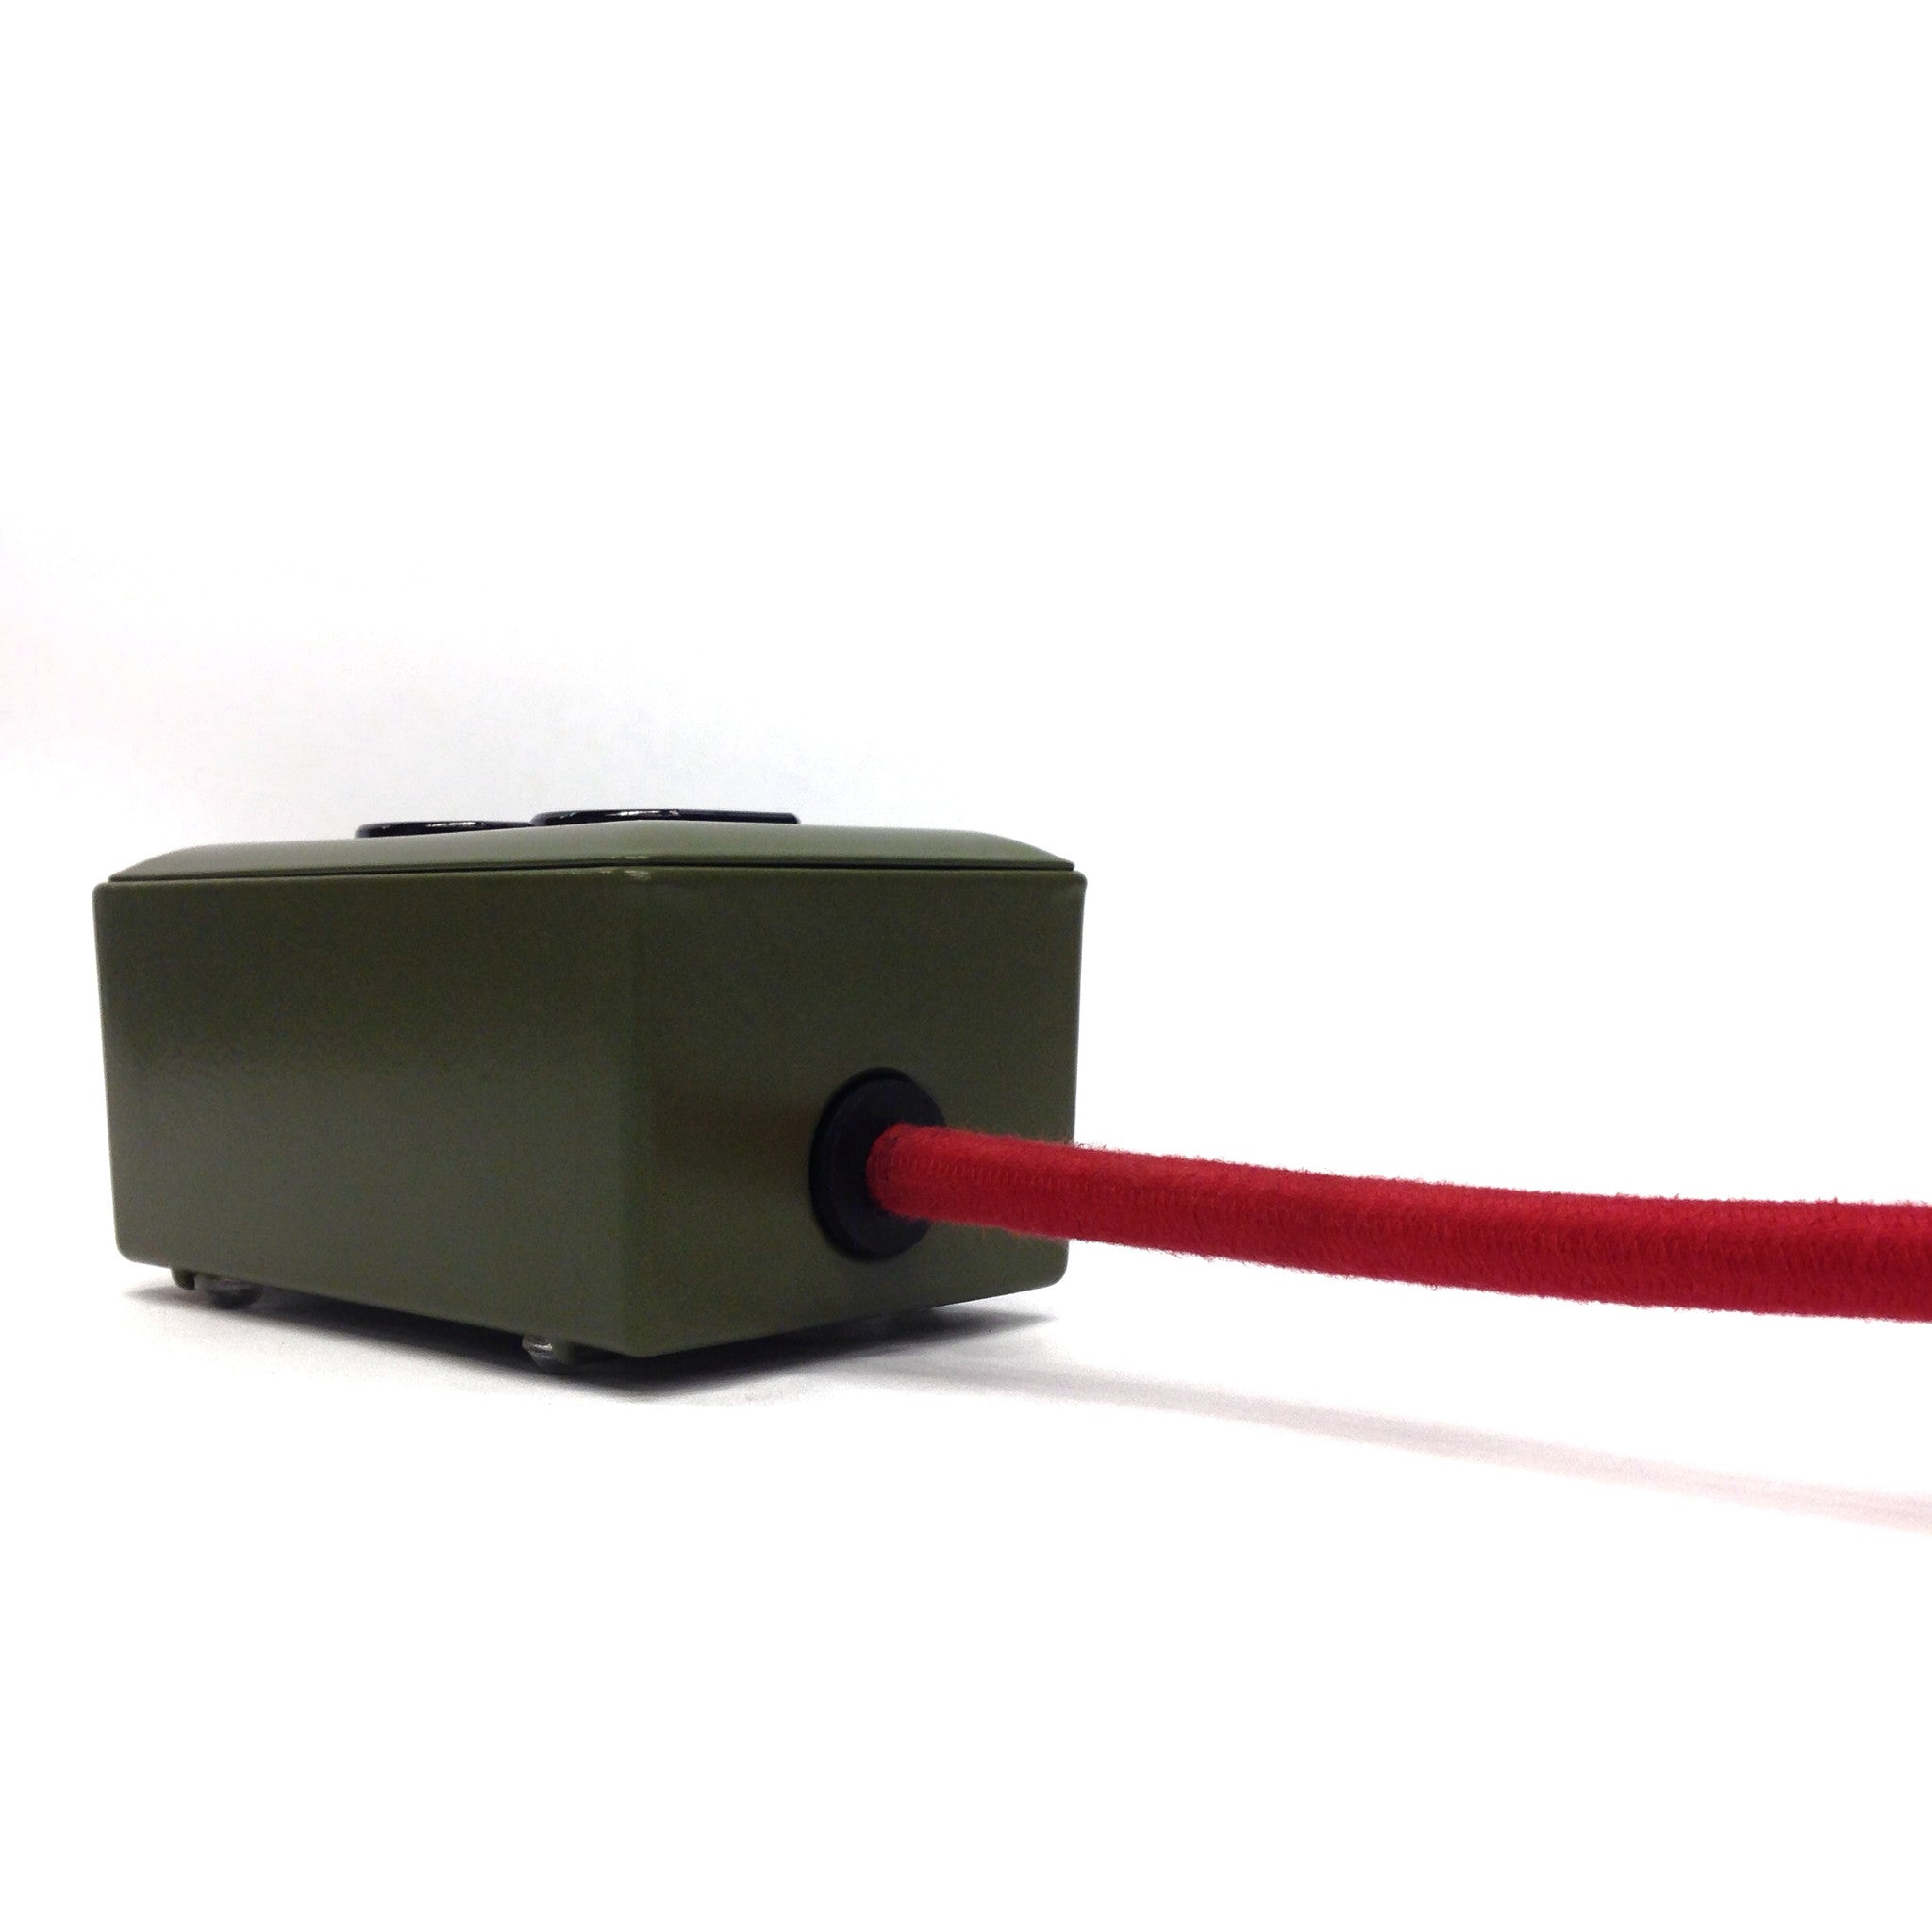 Extō 4077th Green - A Modern Dual-Tamper-Resistant Outlet, 13-AMP Extension Cord